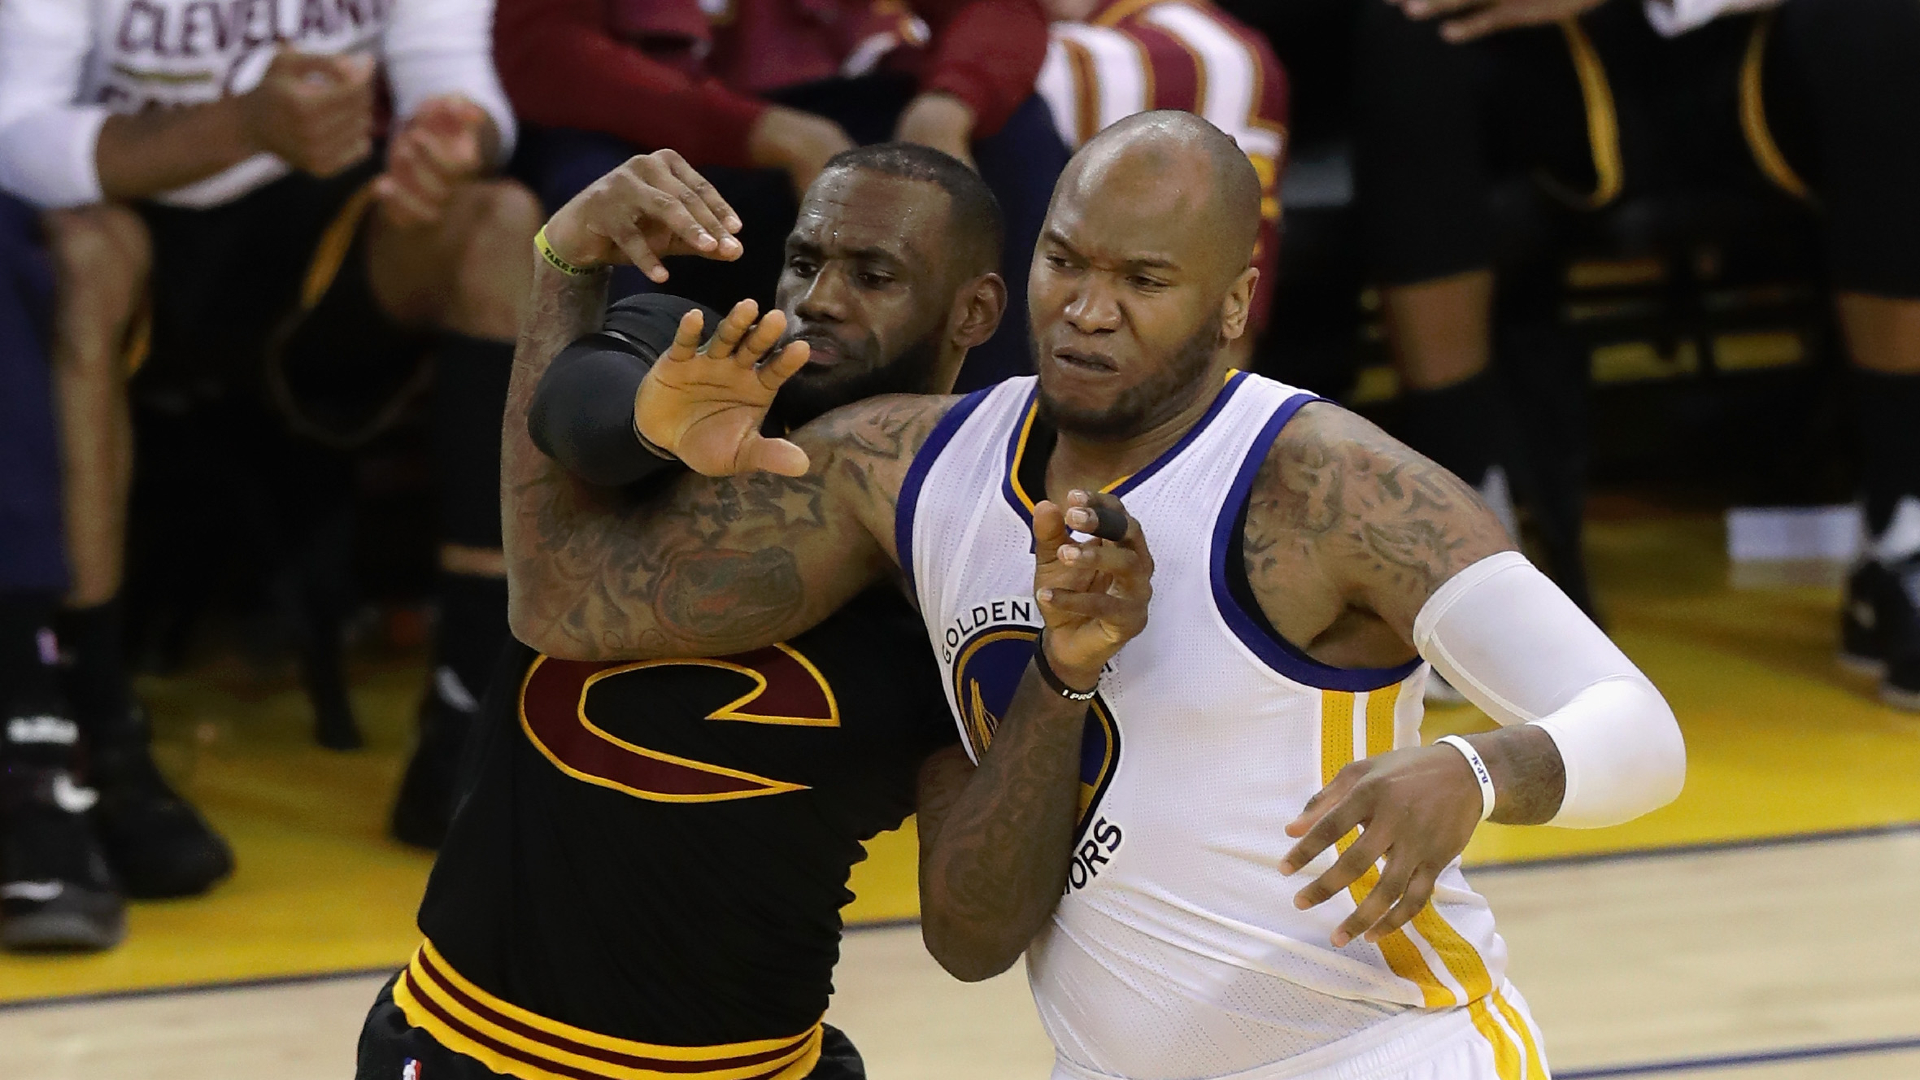 Mo Speights subtweets LeBron James after NBA Finals win, then turns account private 1